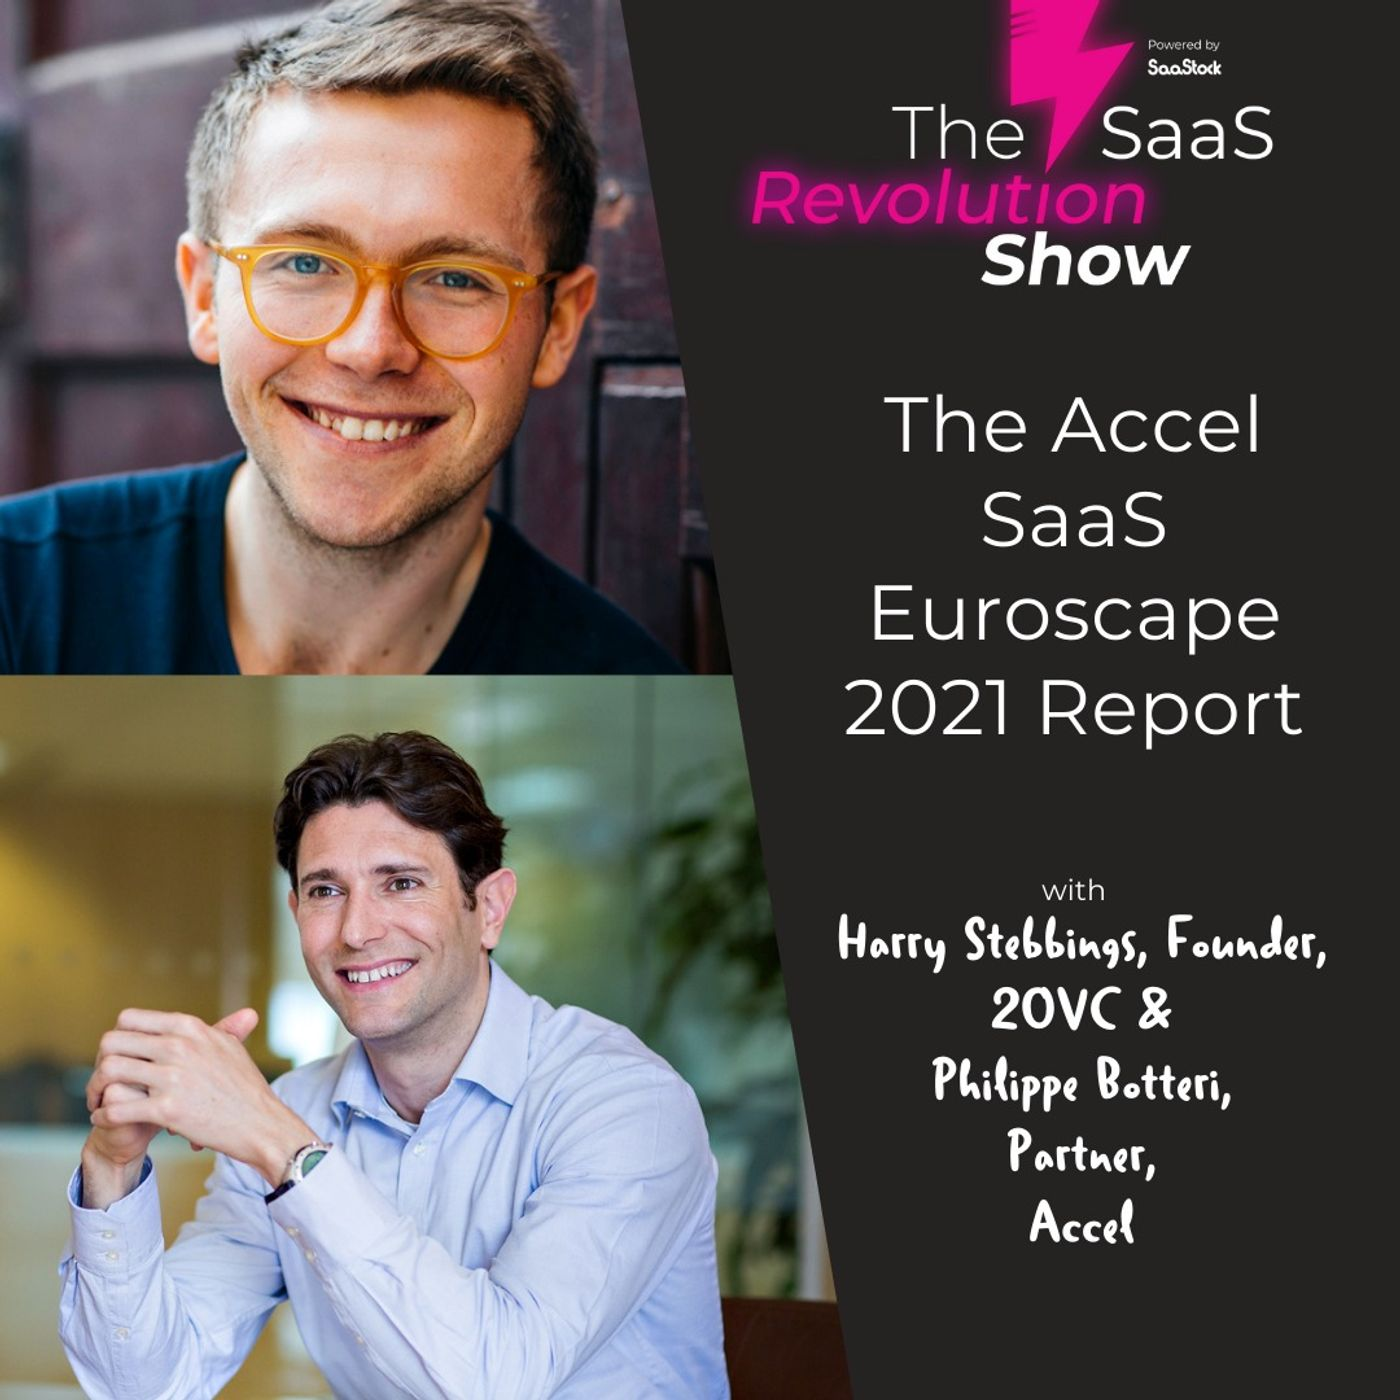 The Accel SaaS Euroscape 2021 Report